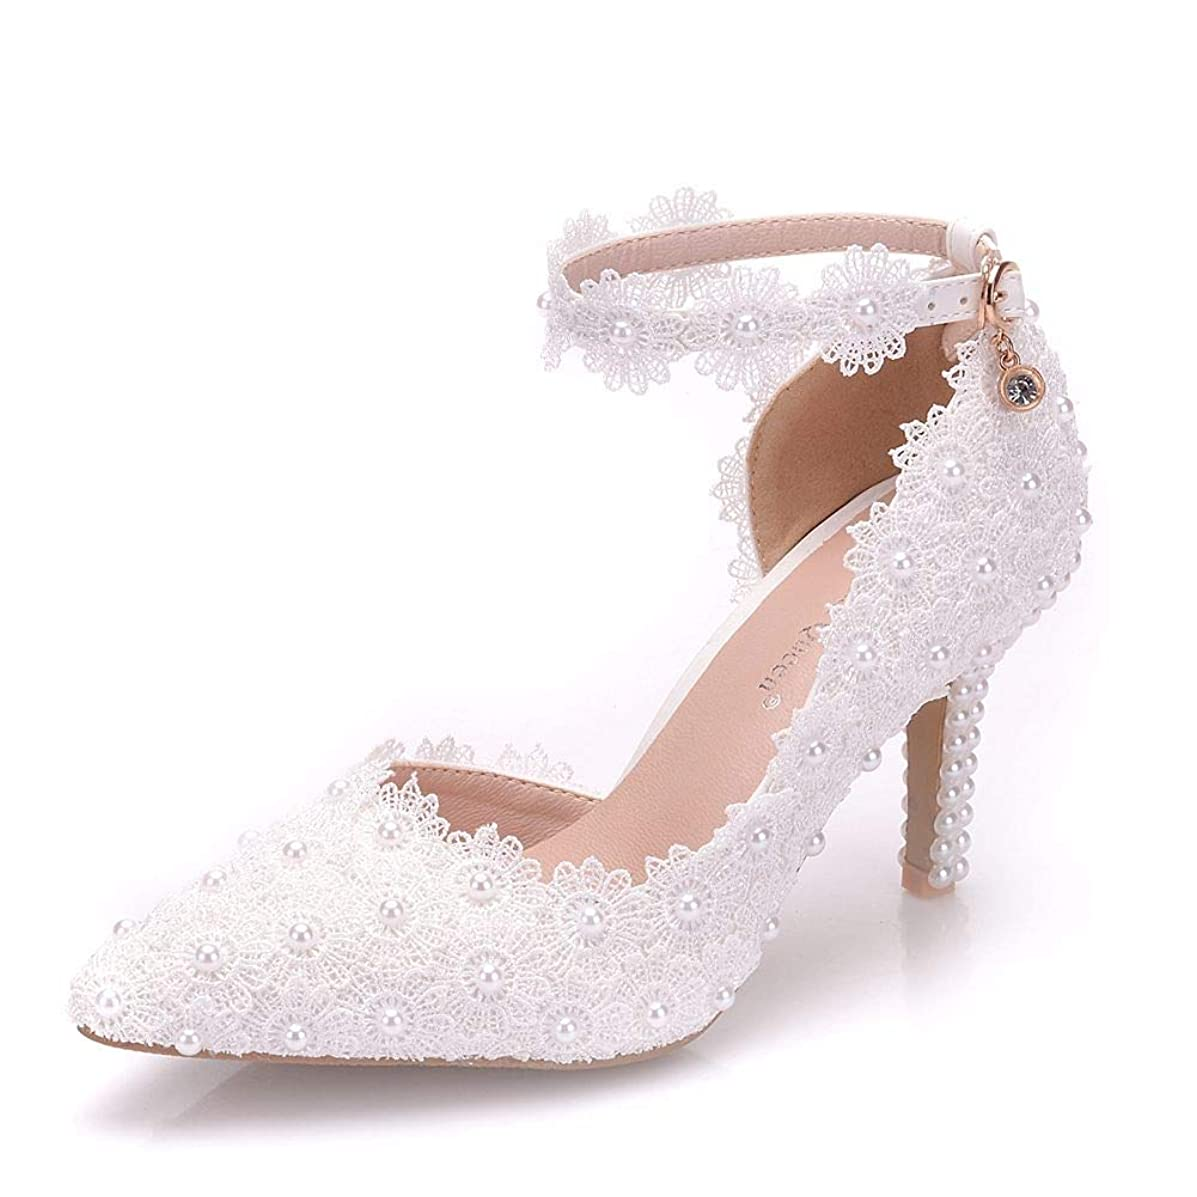 VINEIL Women Ankle Strap High Heels Sandals White Lace Pearls Party Evening Dress Wedding Shoes Pumps